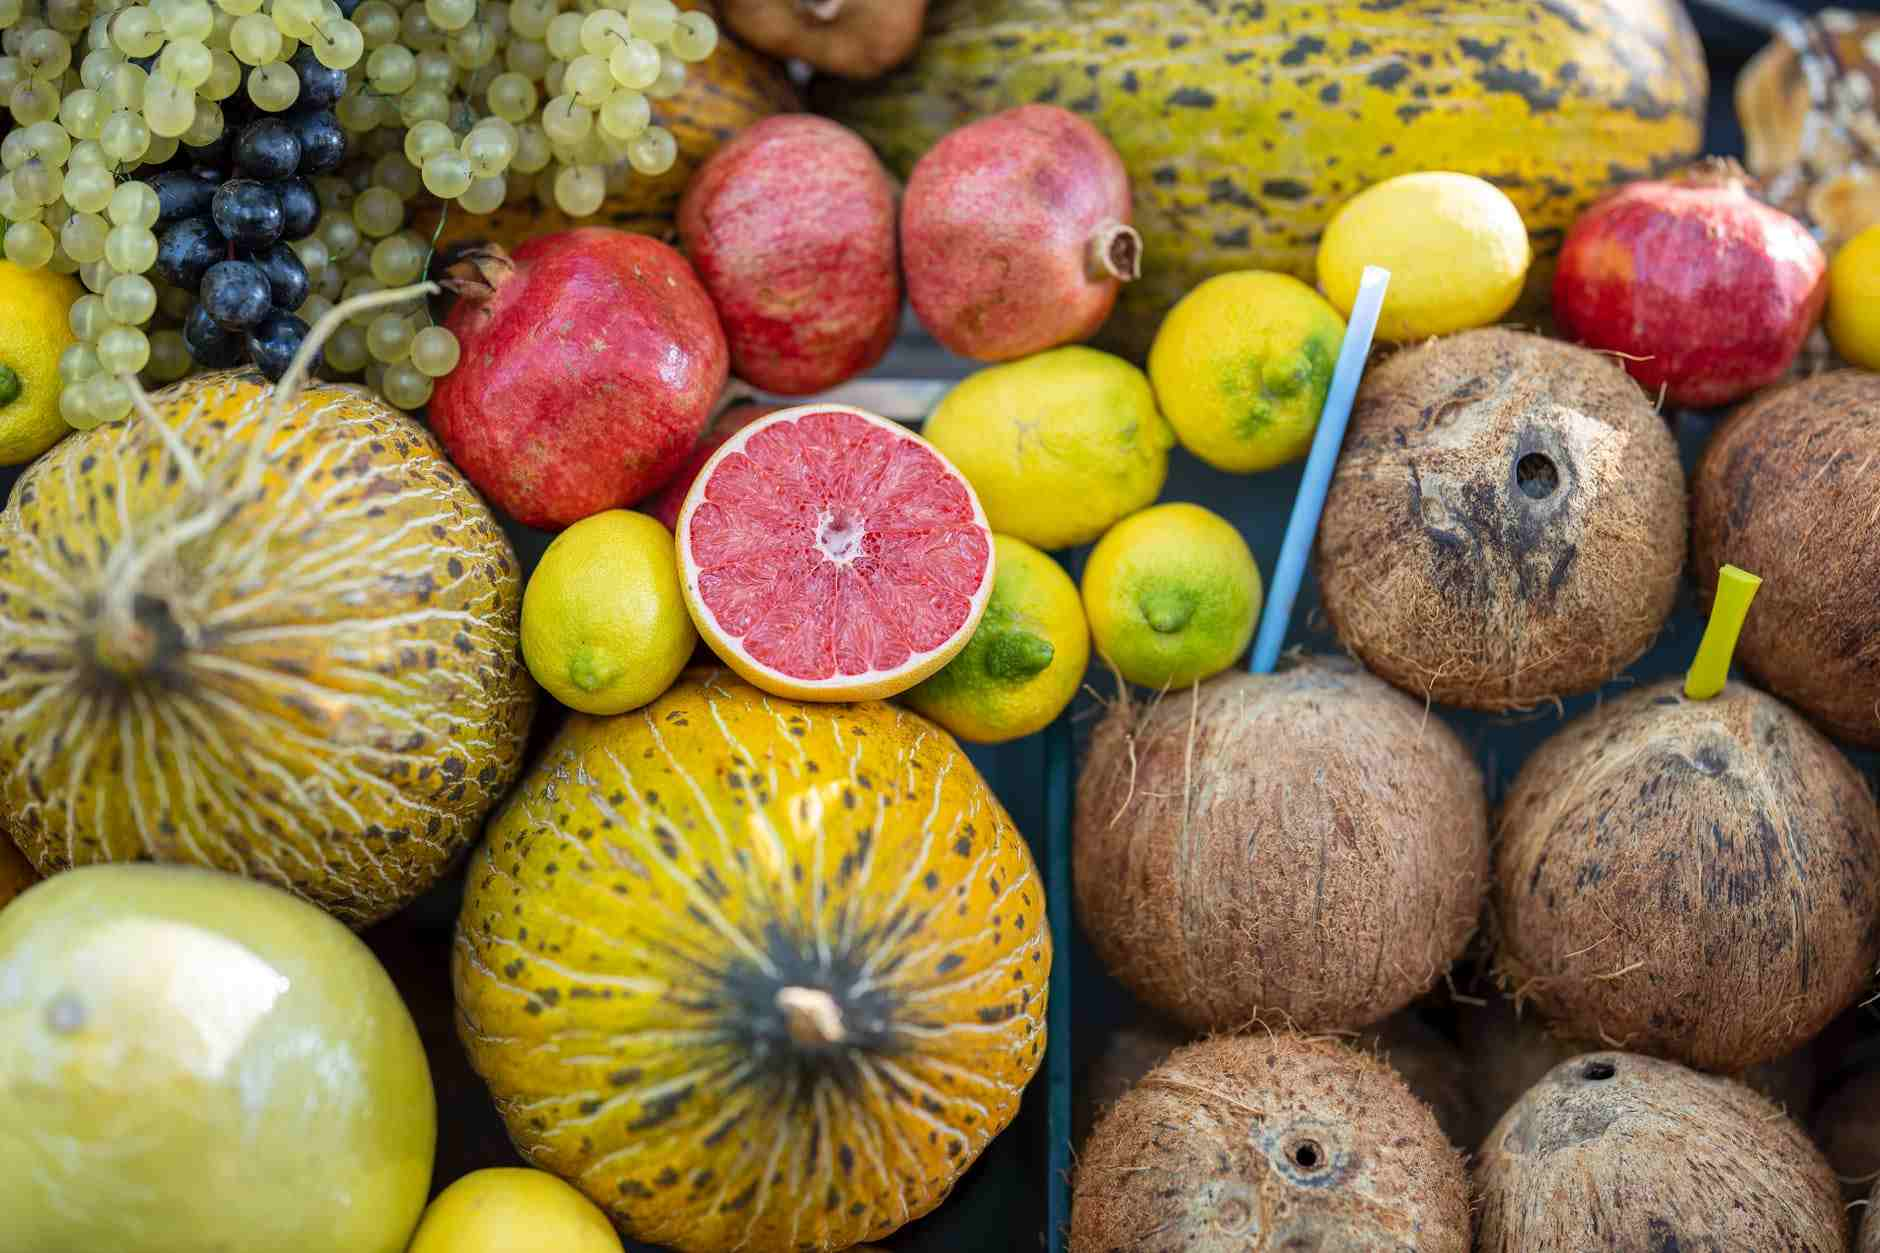 fruits name in hind and english